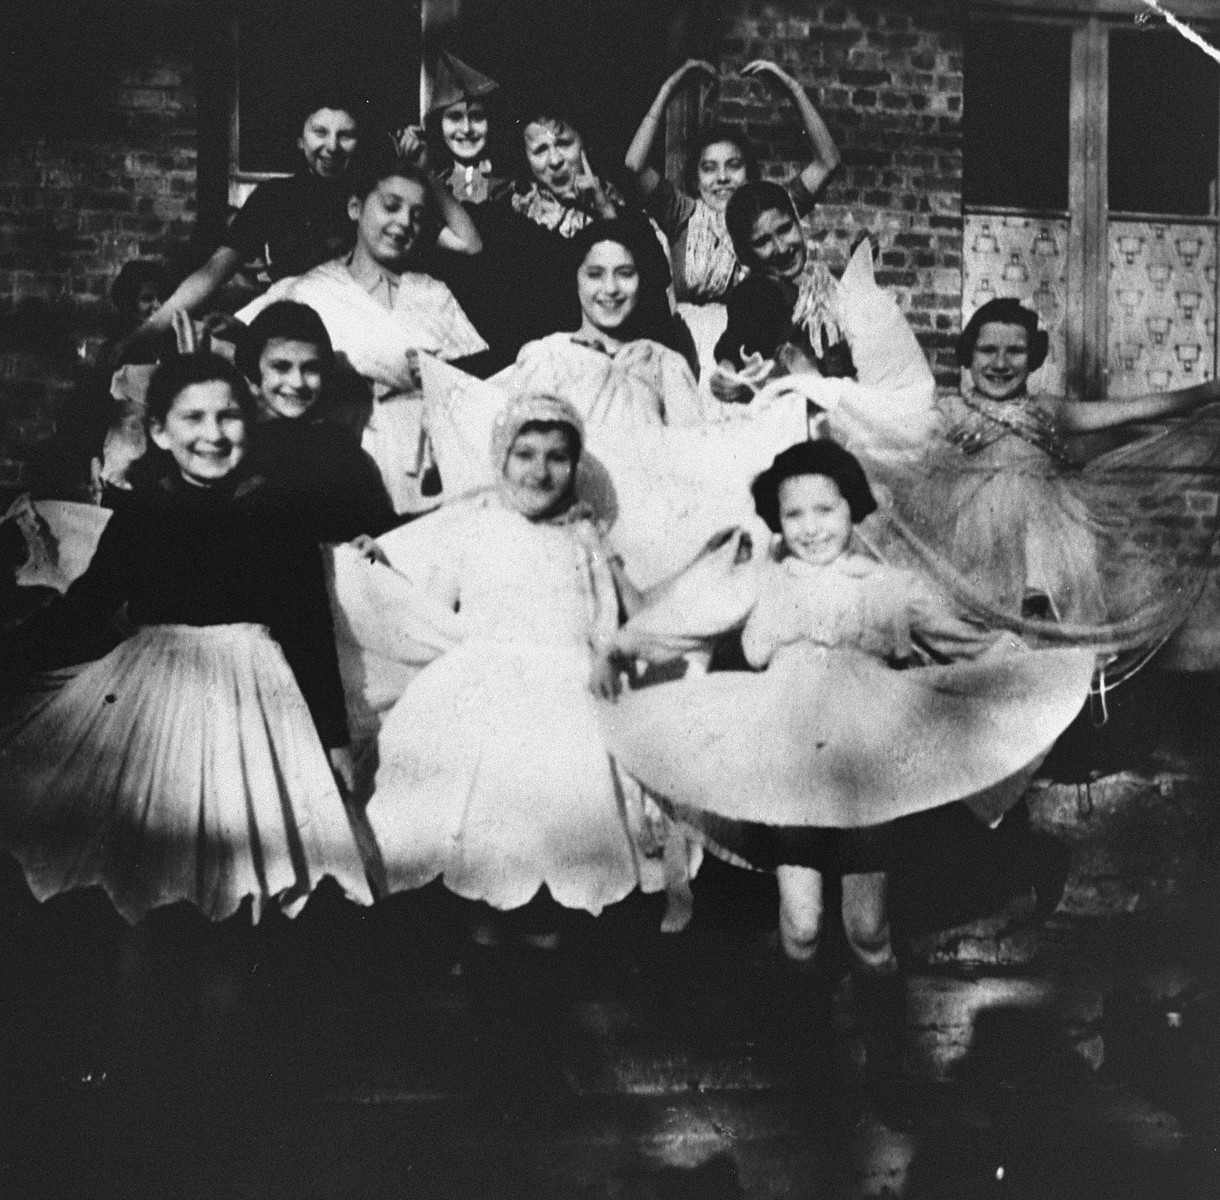 Gisele Warshawsky (second from left) poses with a group of children while in hiding at a convent in Sugny, Belgium.